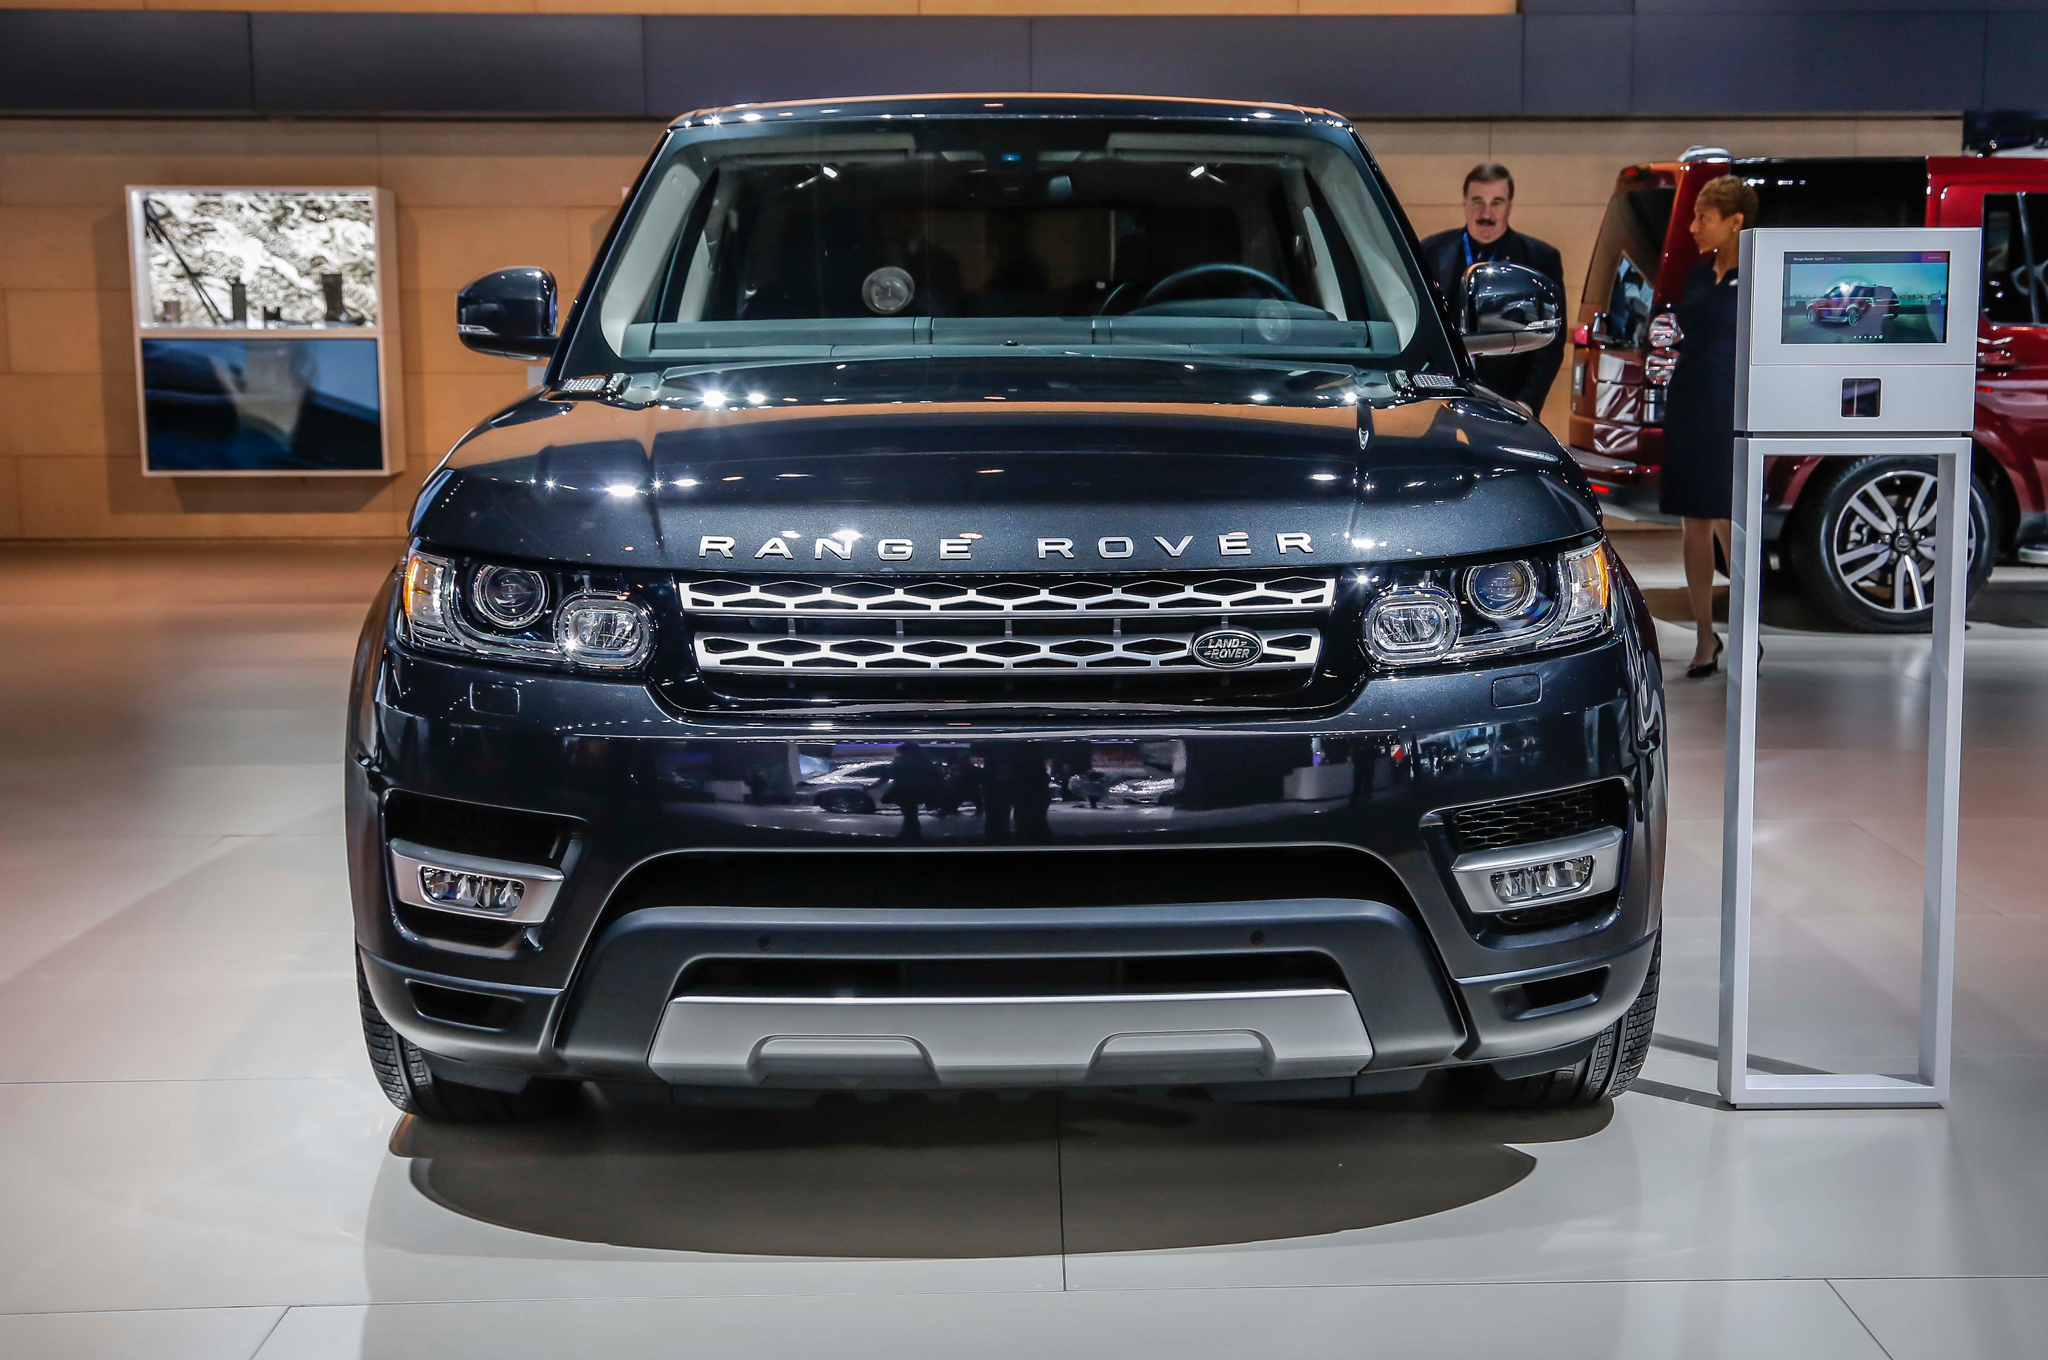 Land Rover Range Rover 2016 review – OSOUL HOUSE Kuwait